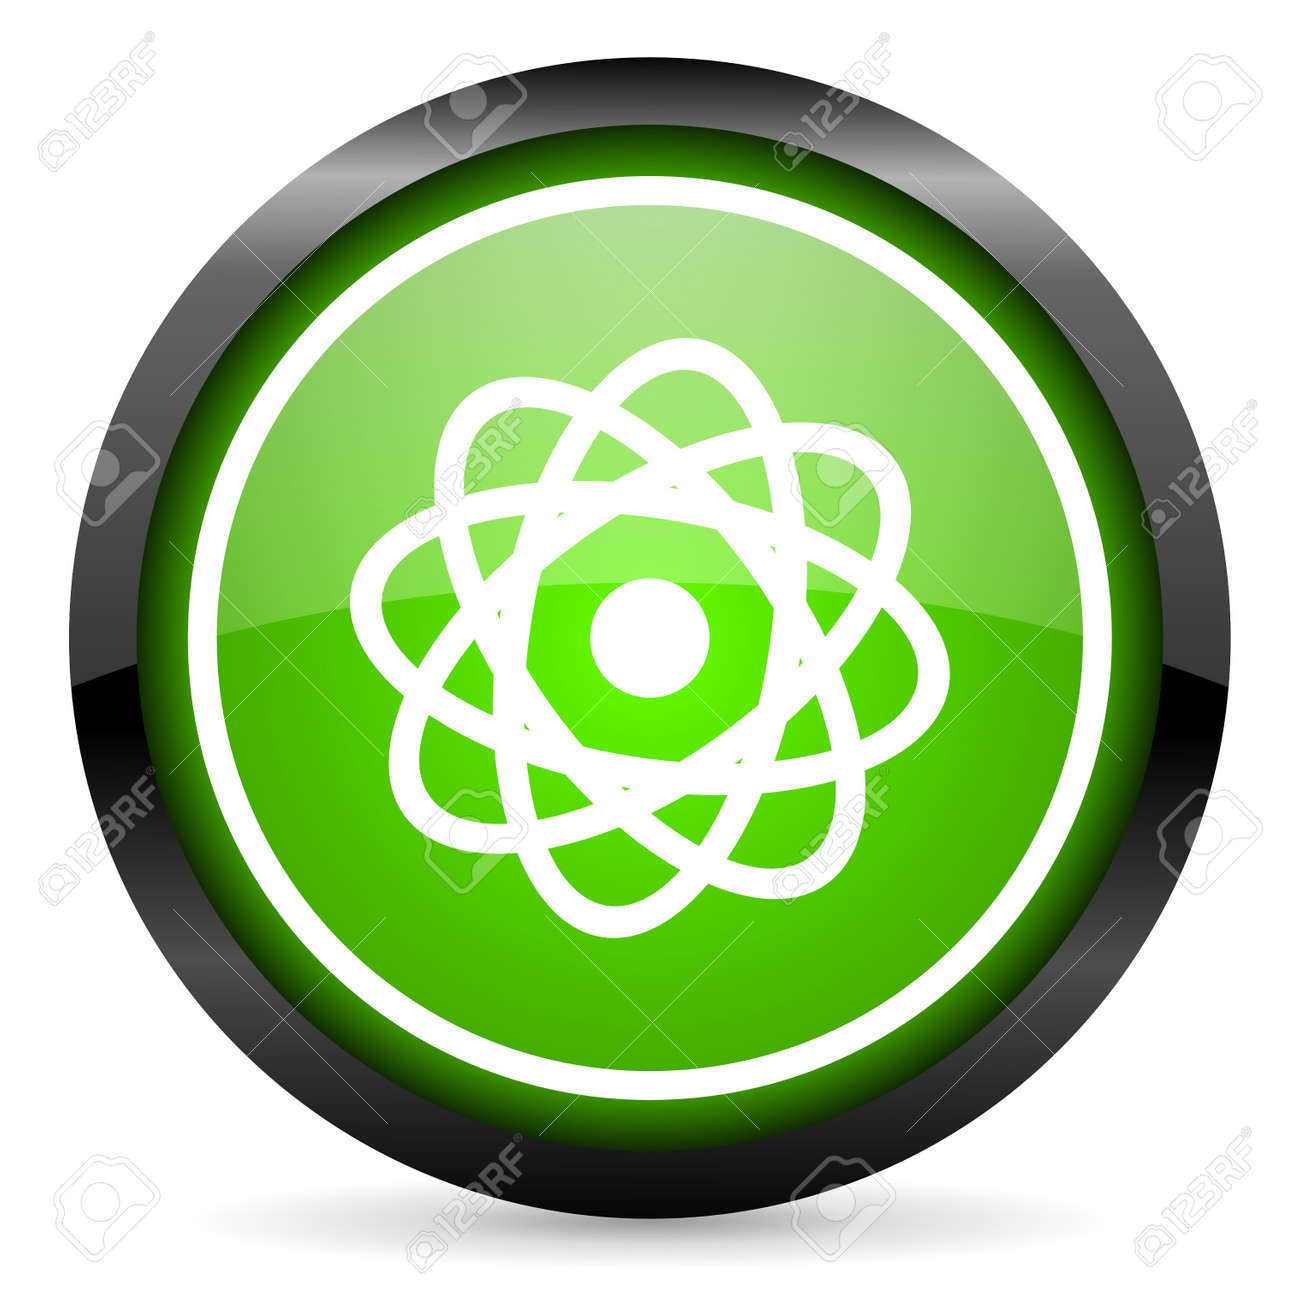 atom green glossy icon on white background Stock Photo - 16736823